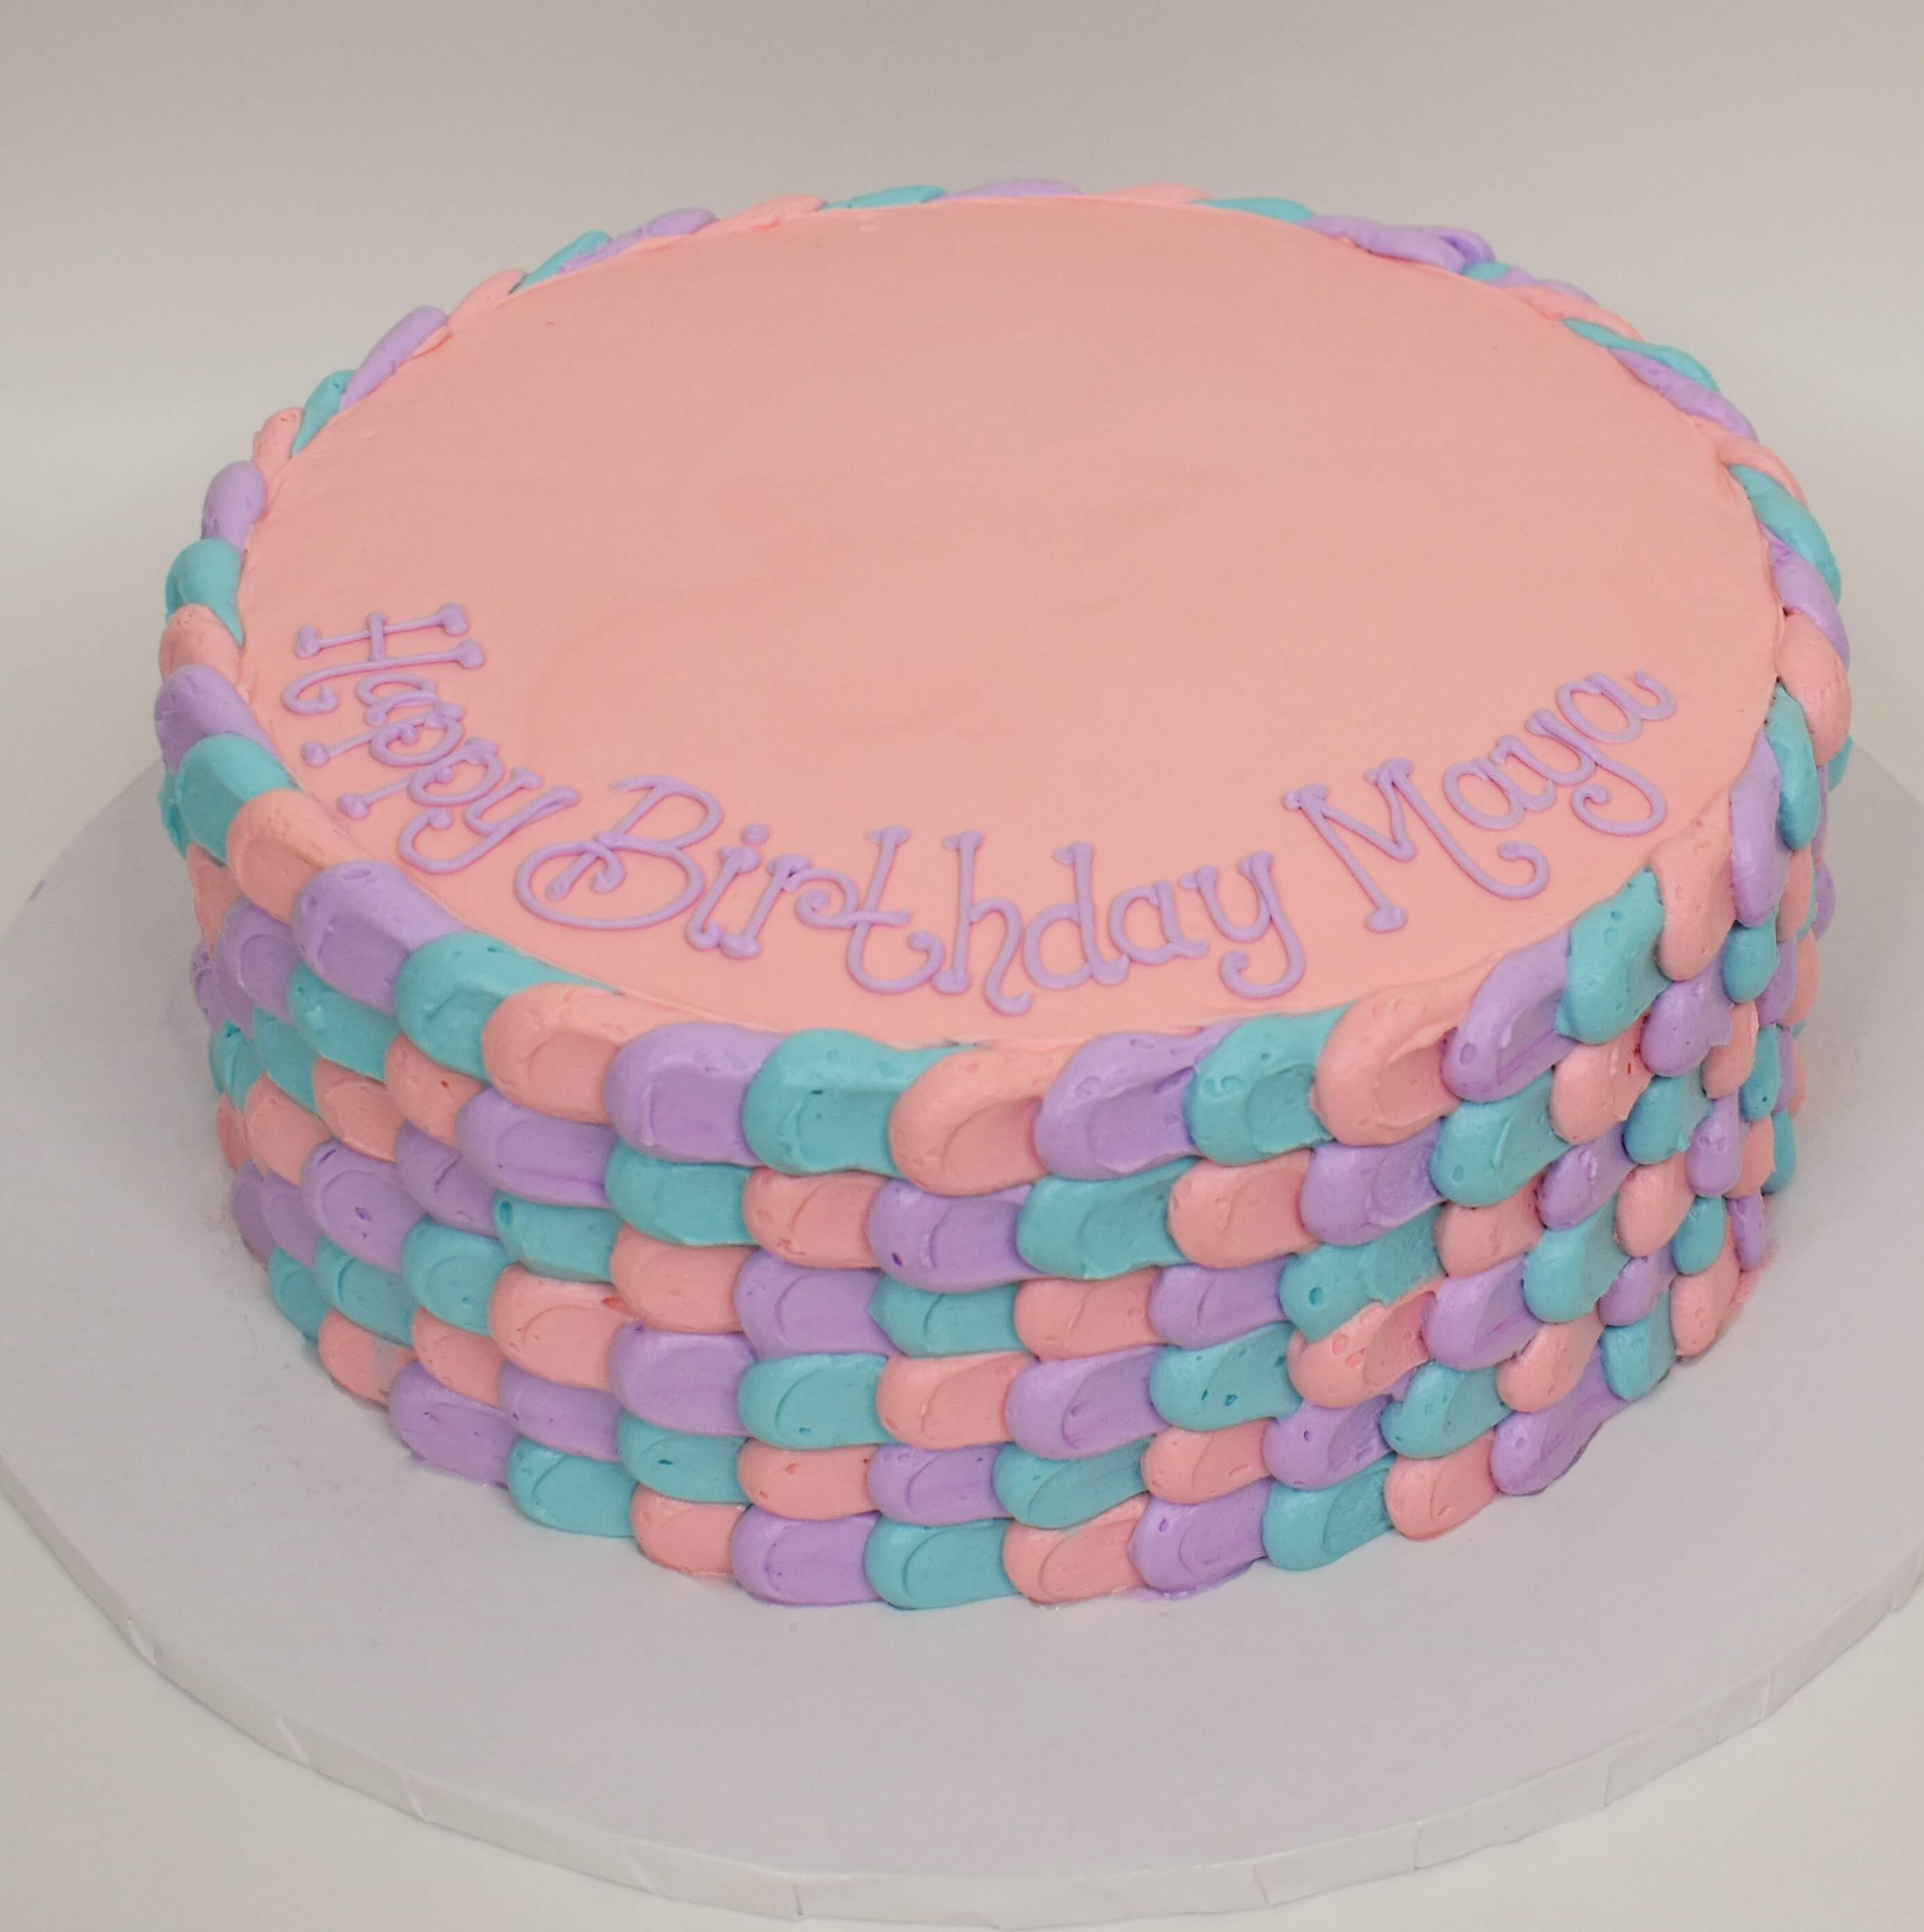 MaArthur's Bakery Custom Cake with Purple, Blue and Pink Mermaid Scales